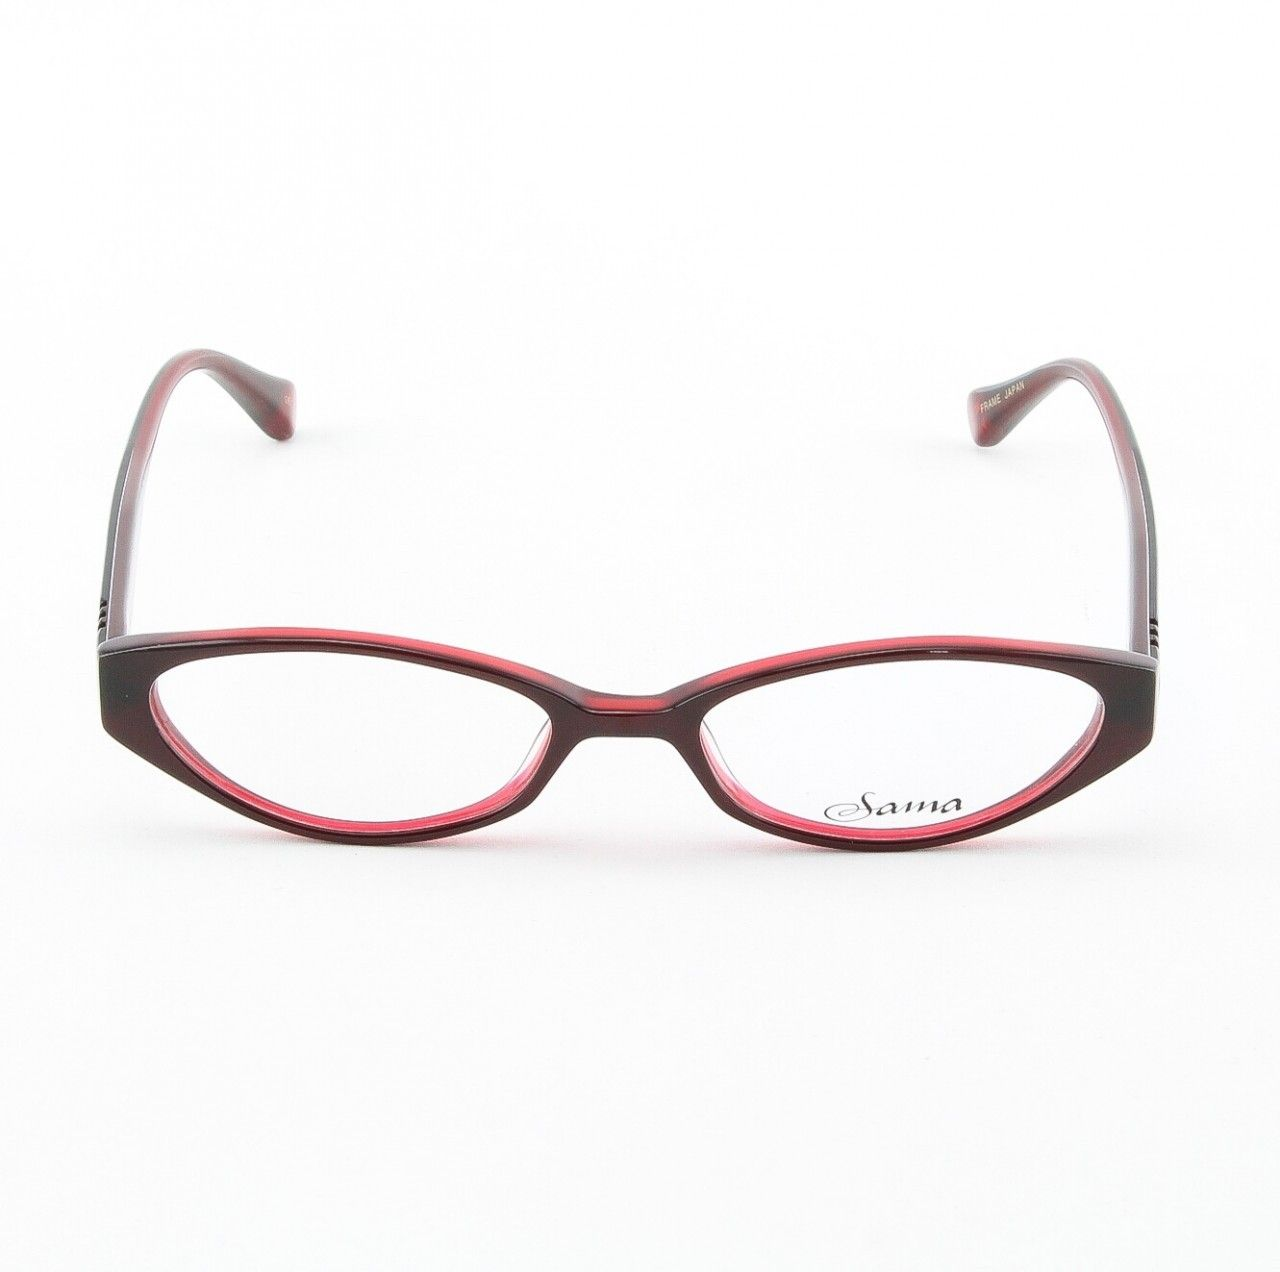 Loree Rodkin Demi Eyeglasses by Sama Col. Ruby with Clear Lenses - Theaspecs.com